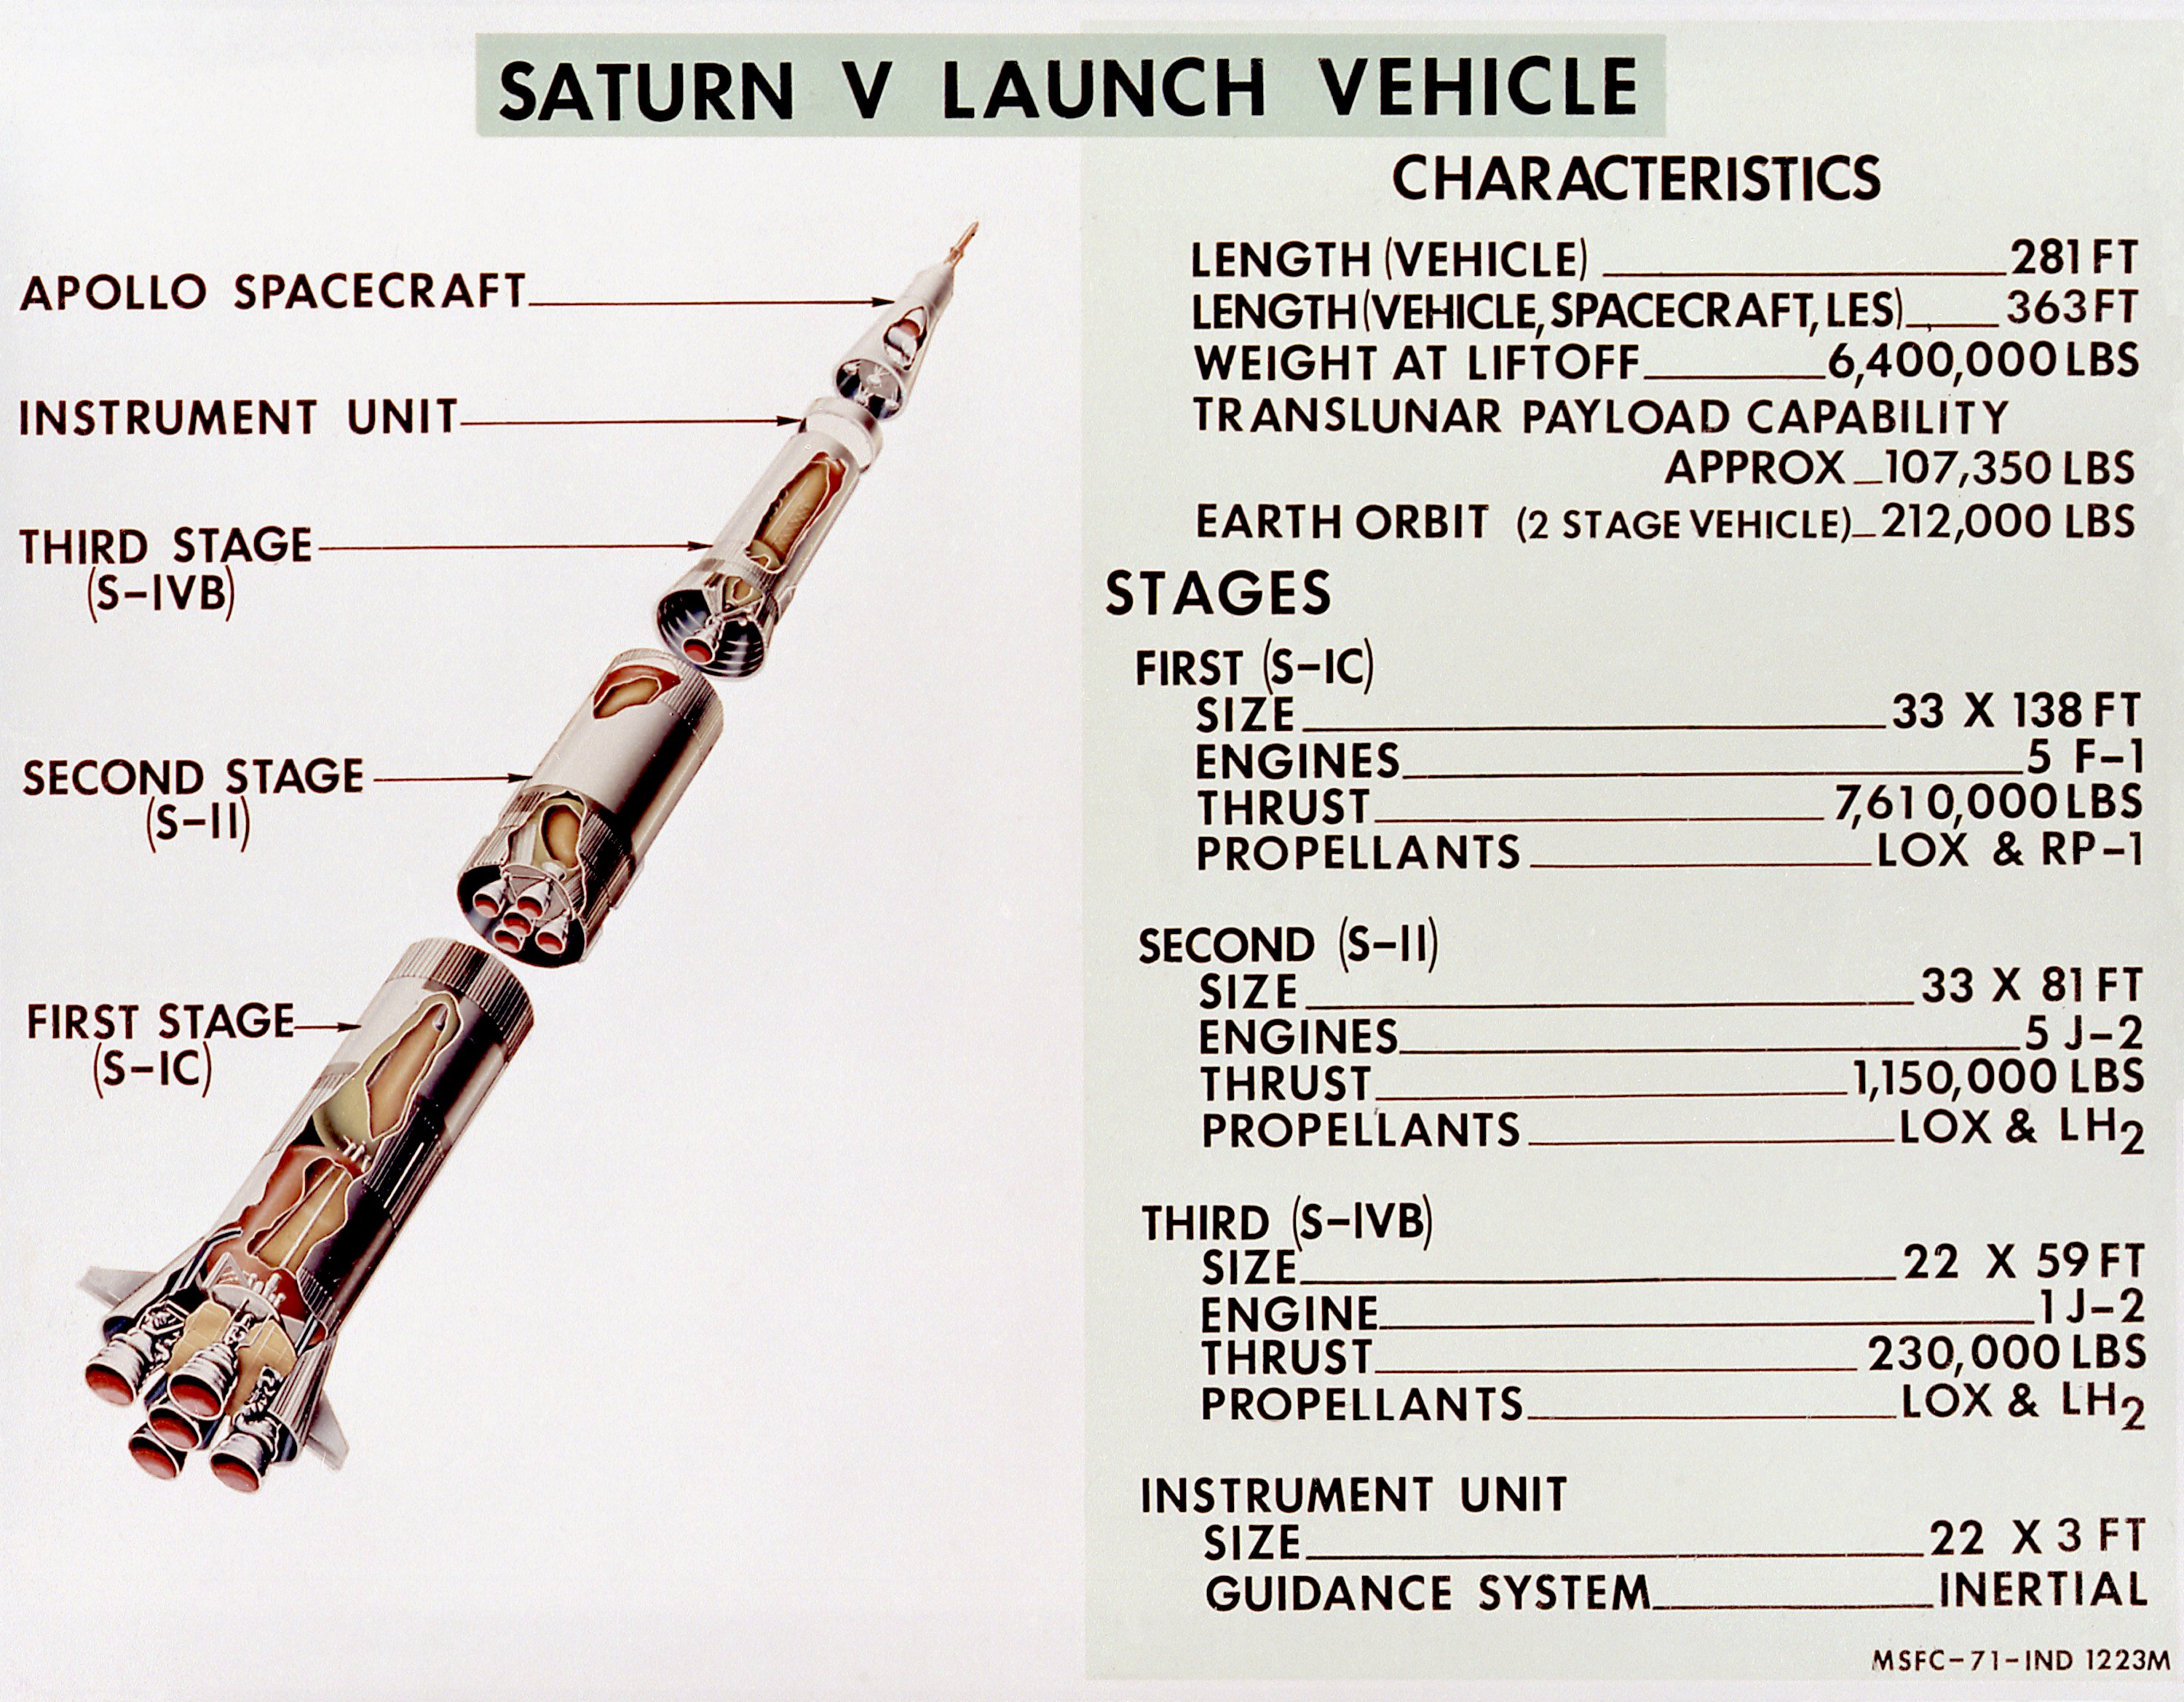 Saturn V Rocket Diagram http://en.wikipedia.org/wiki/File:Diagram_of_Saturn_V_Launch_Vehicle.jpg